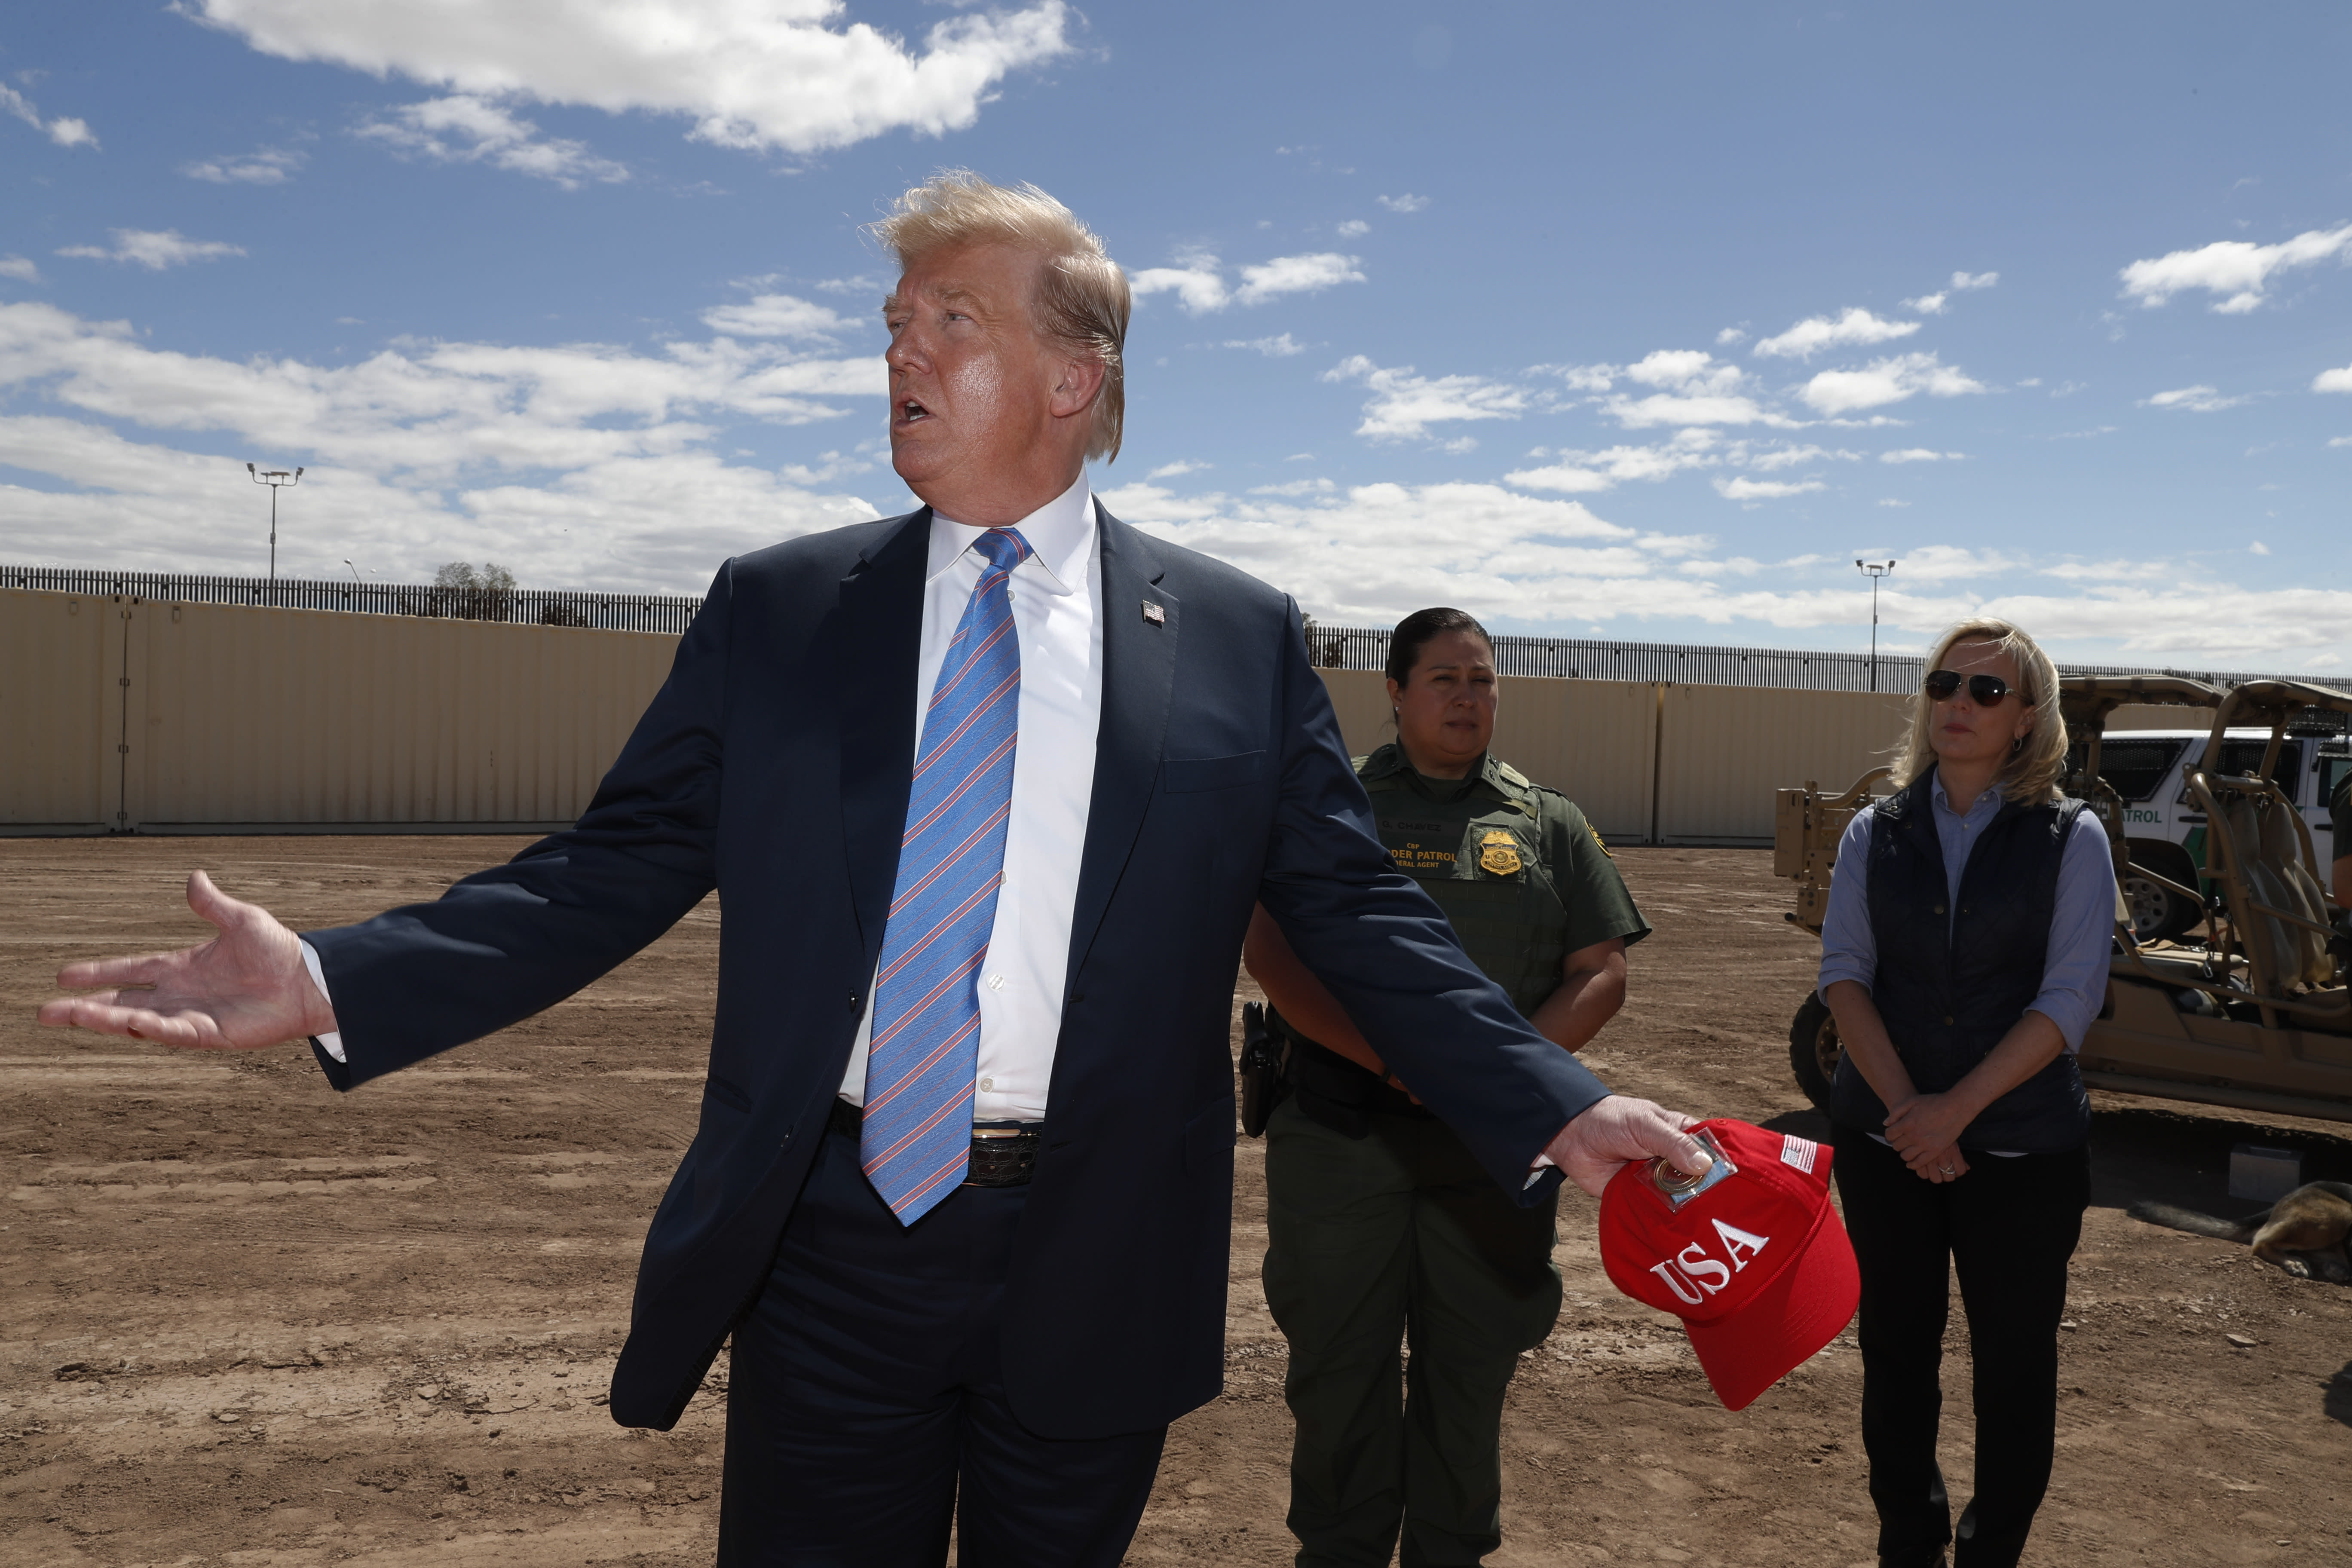 'Our country is full': Trump says migrants straining system